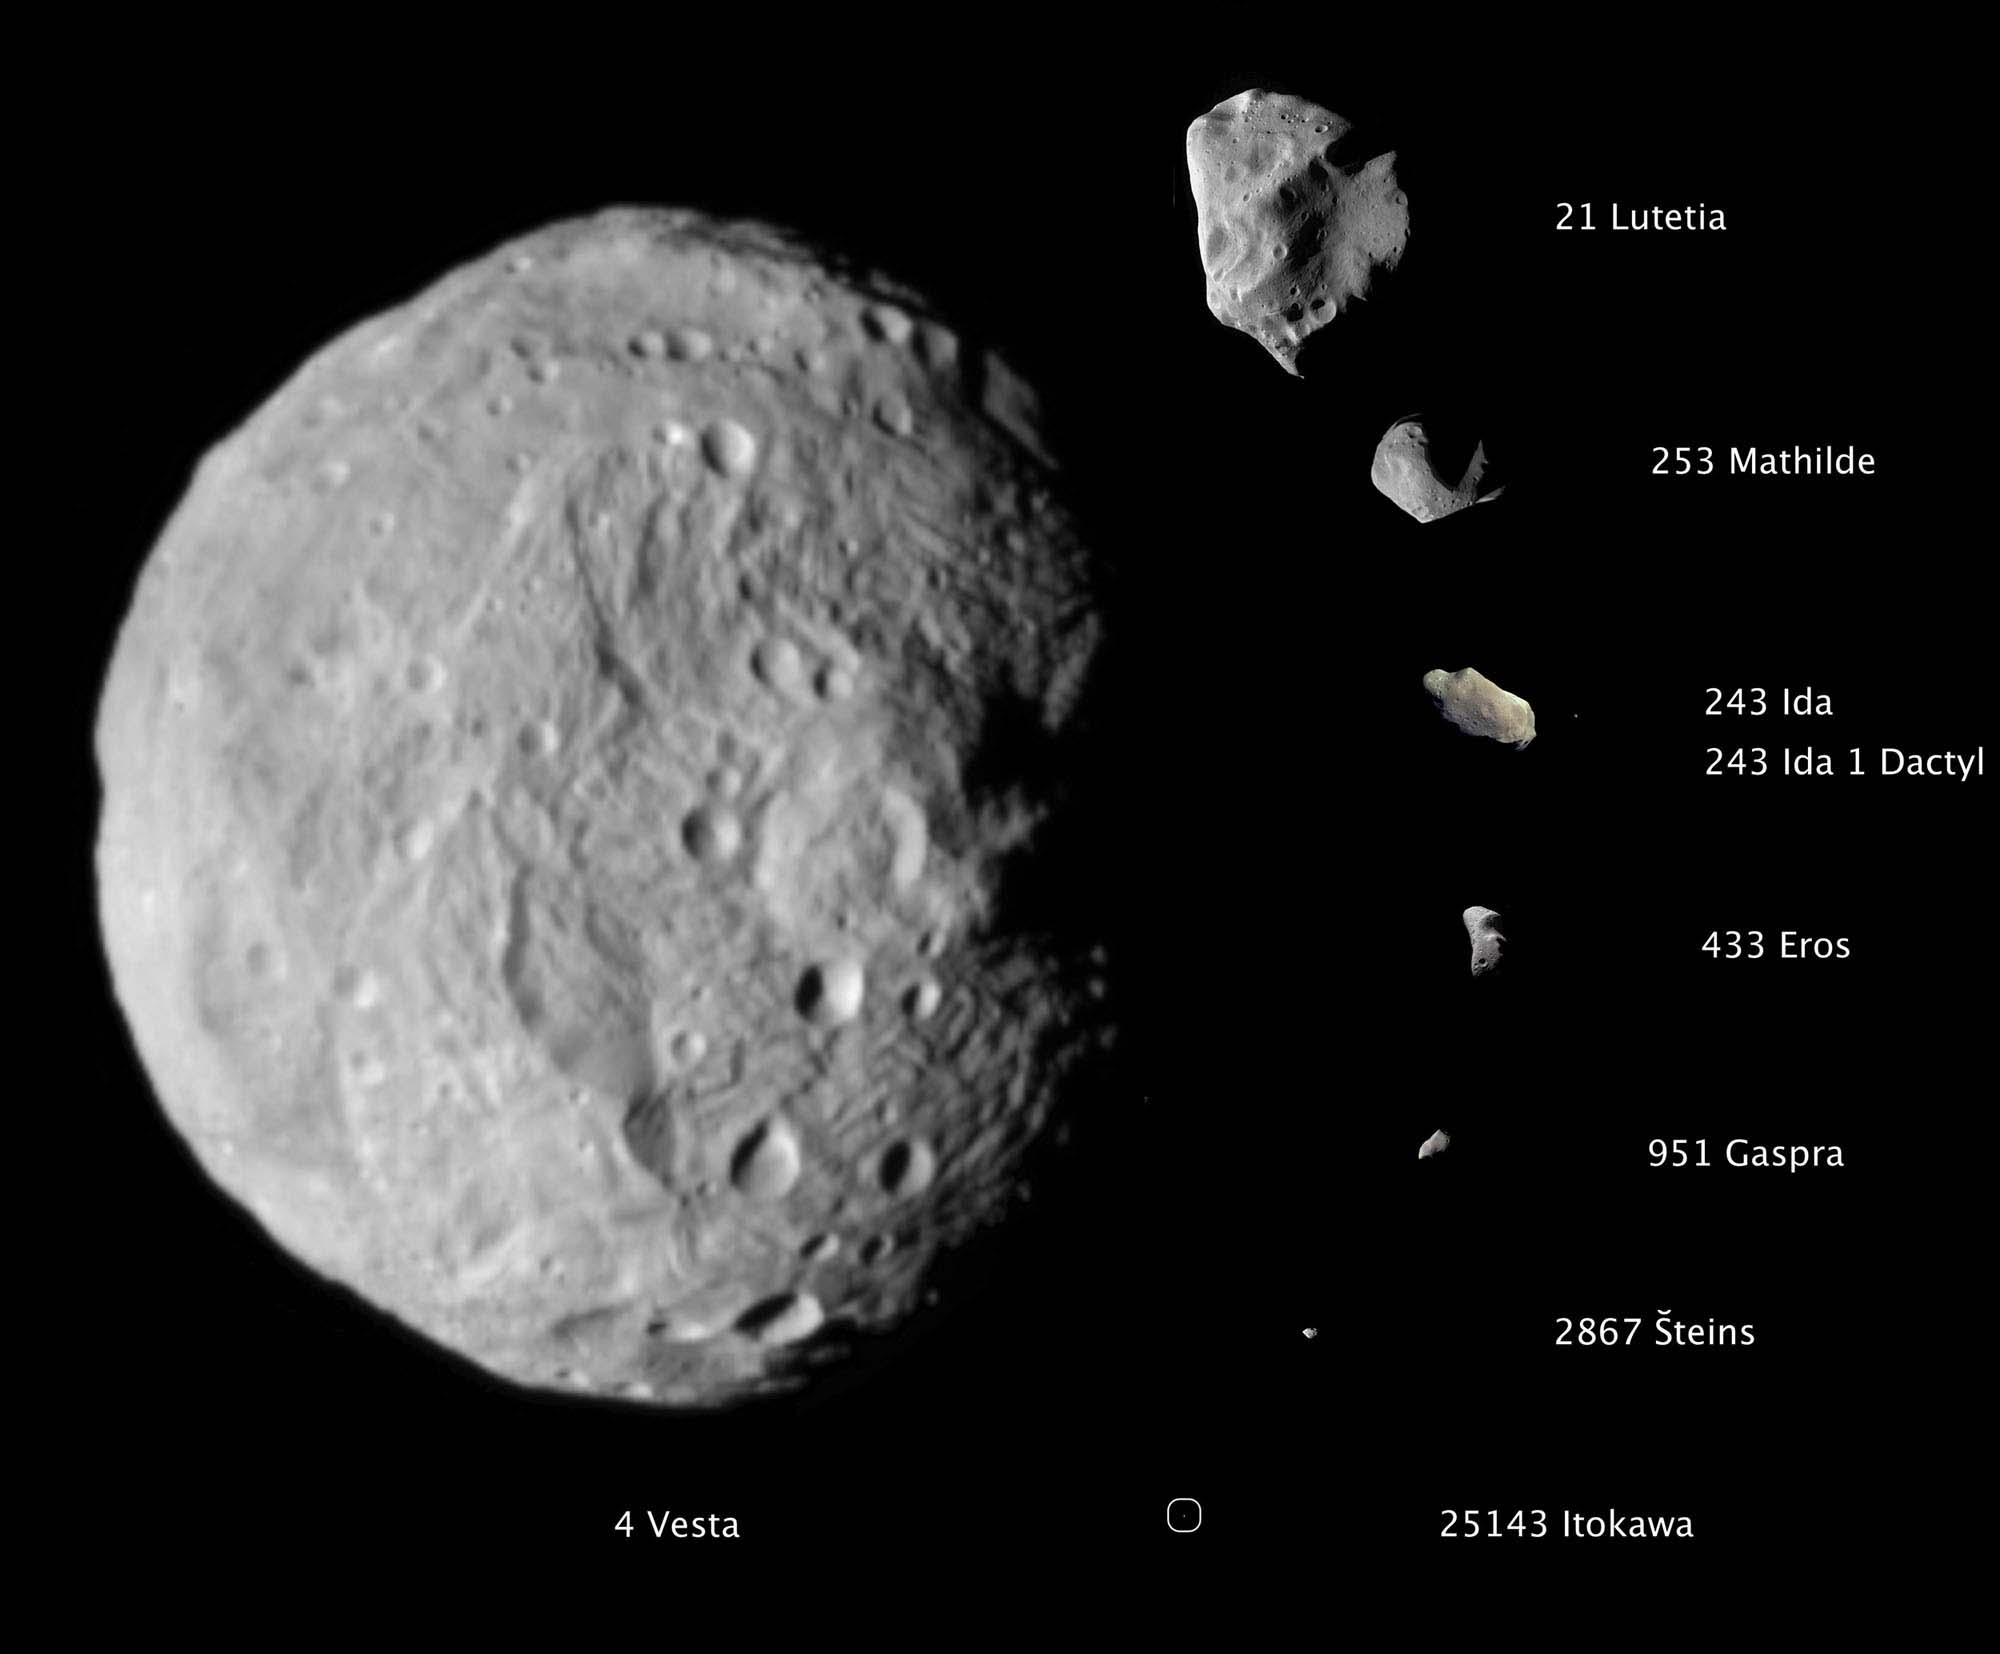 Vesta_plus_Asteroids.jpg